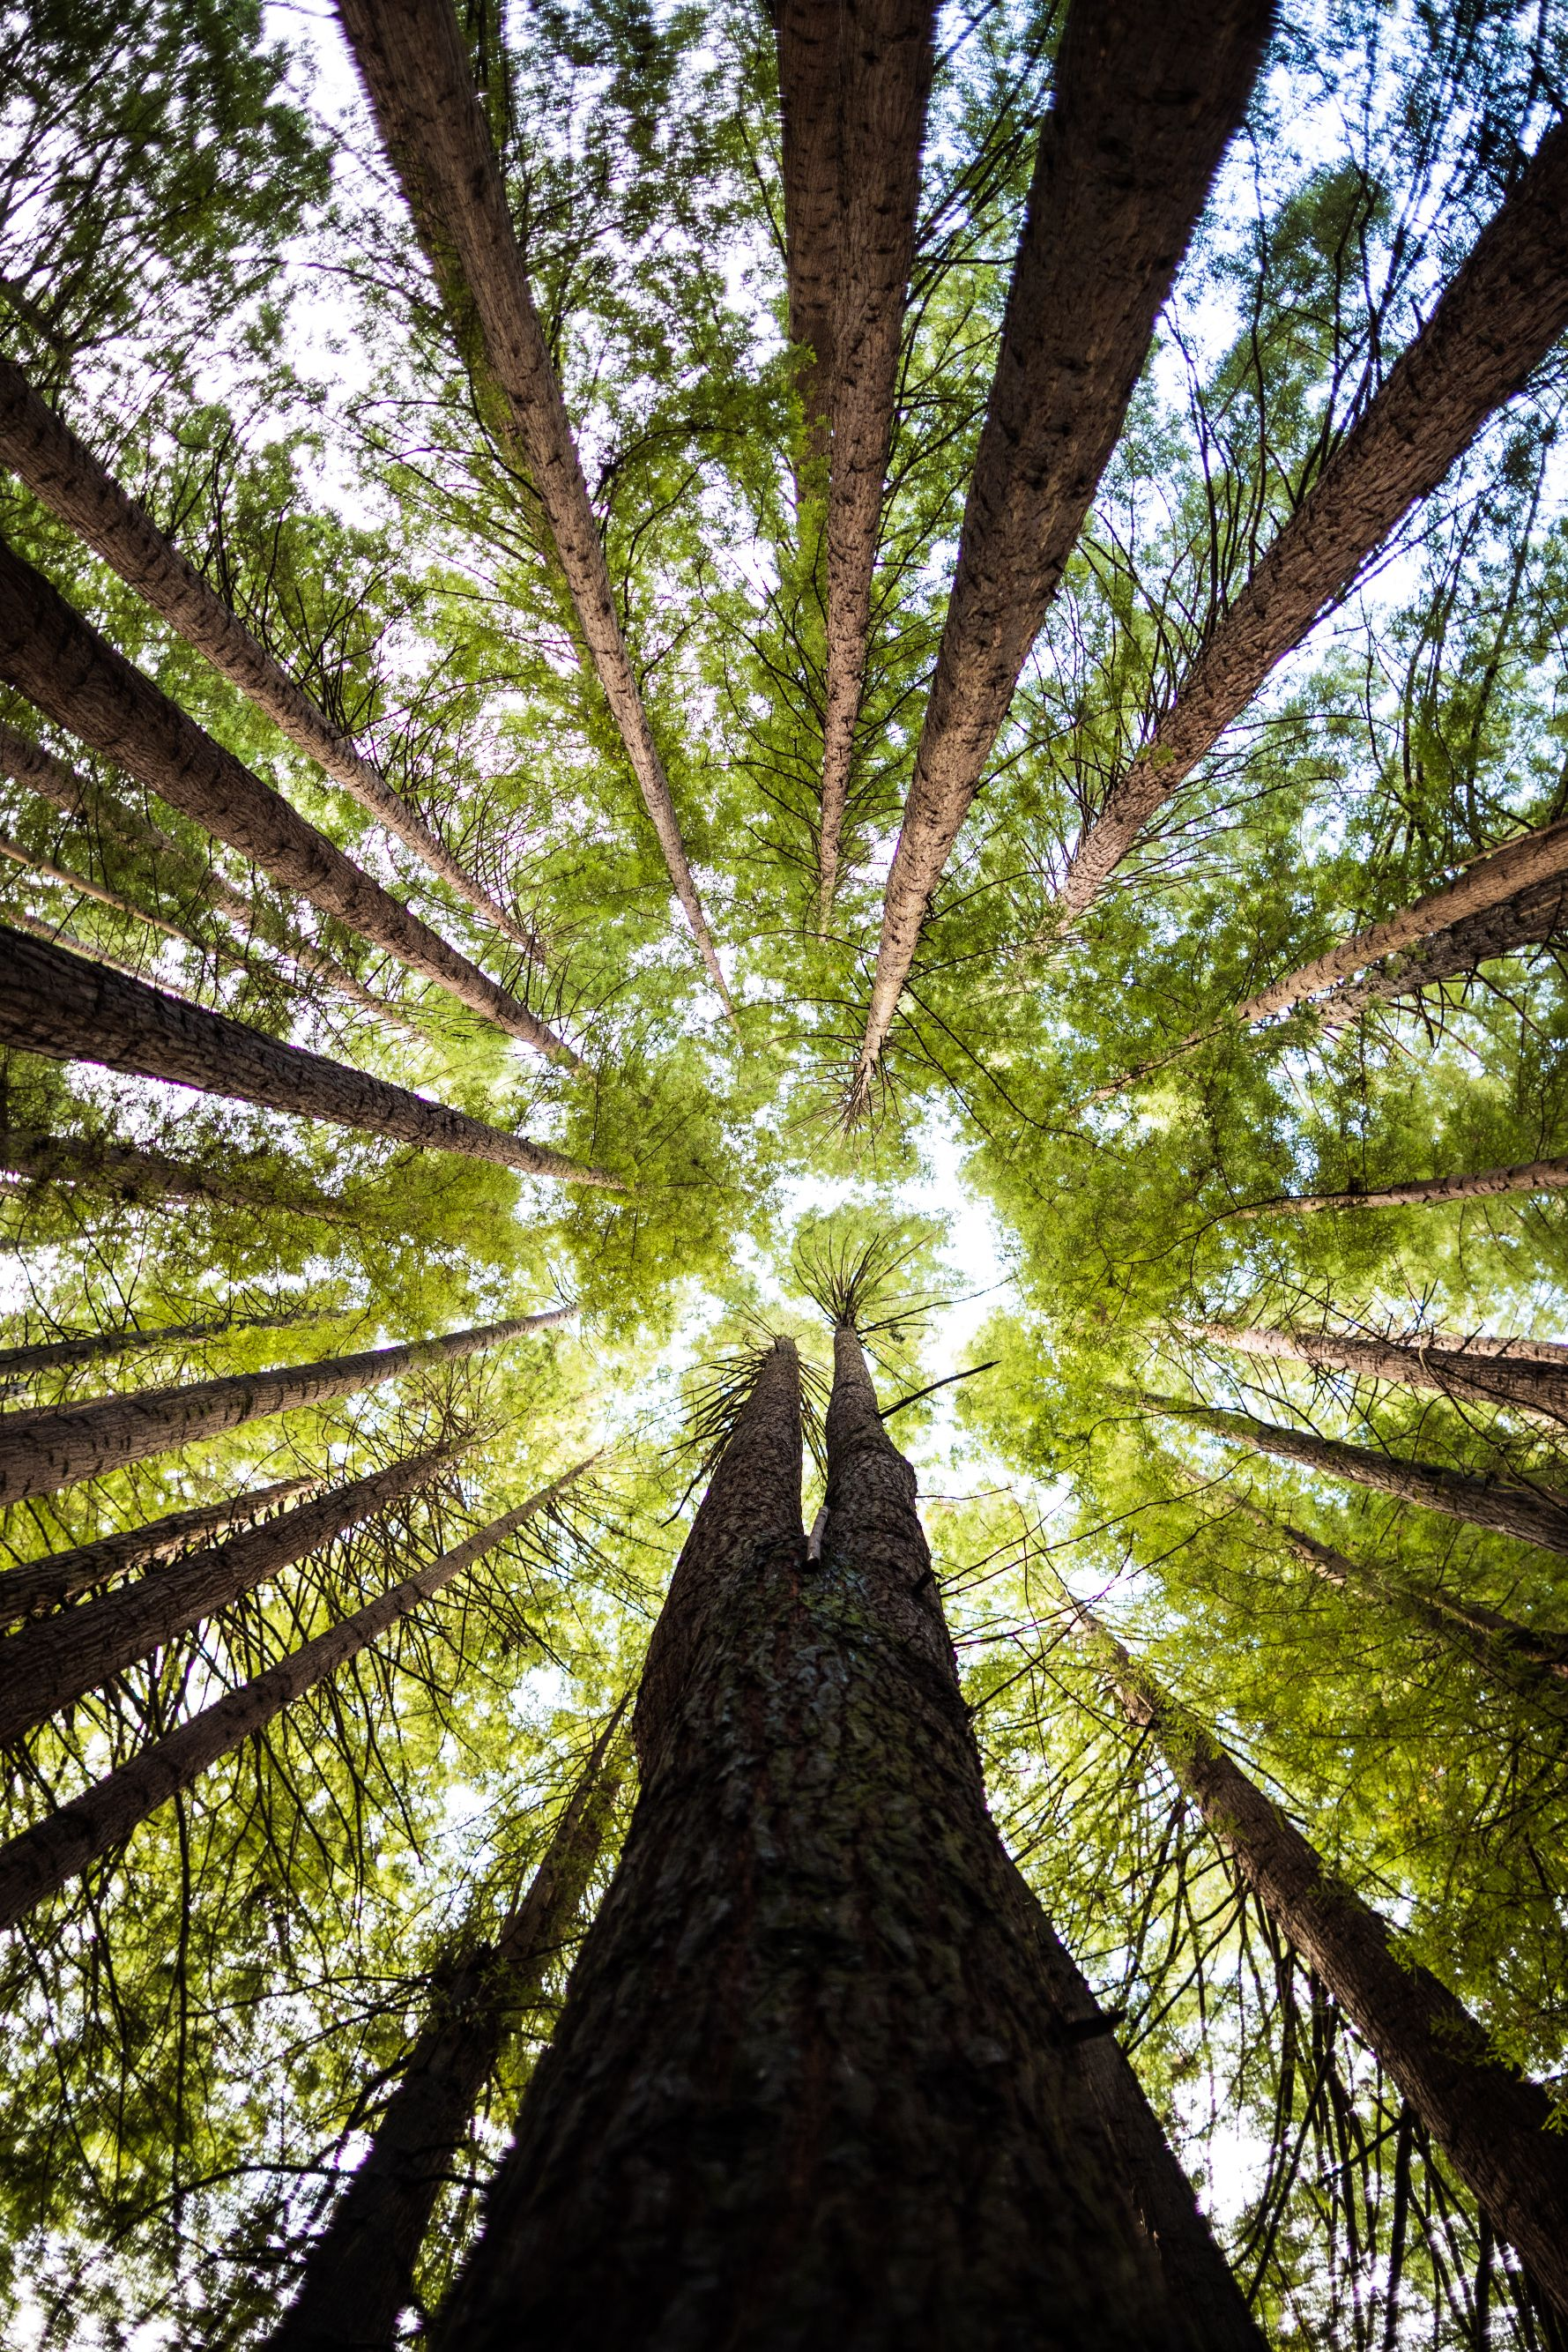 Looking up at the tree tops in a forest.